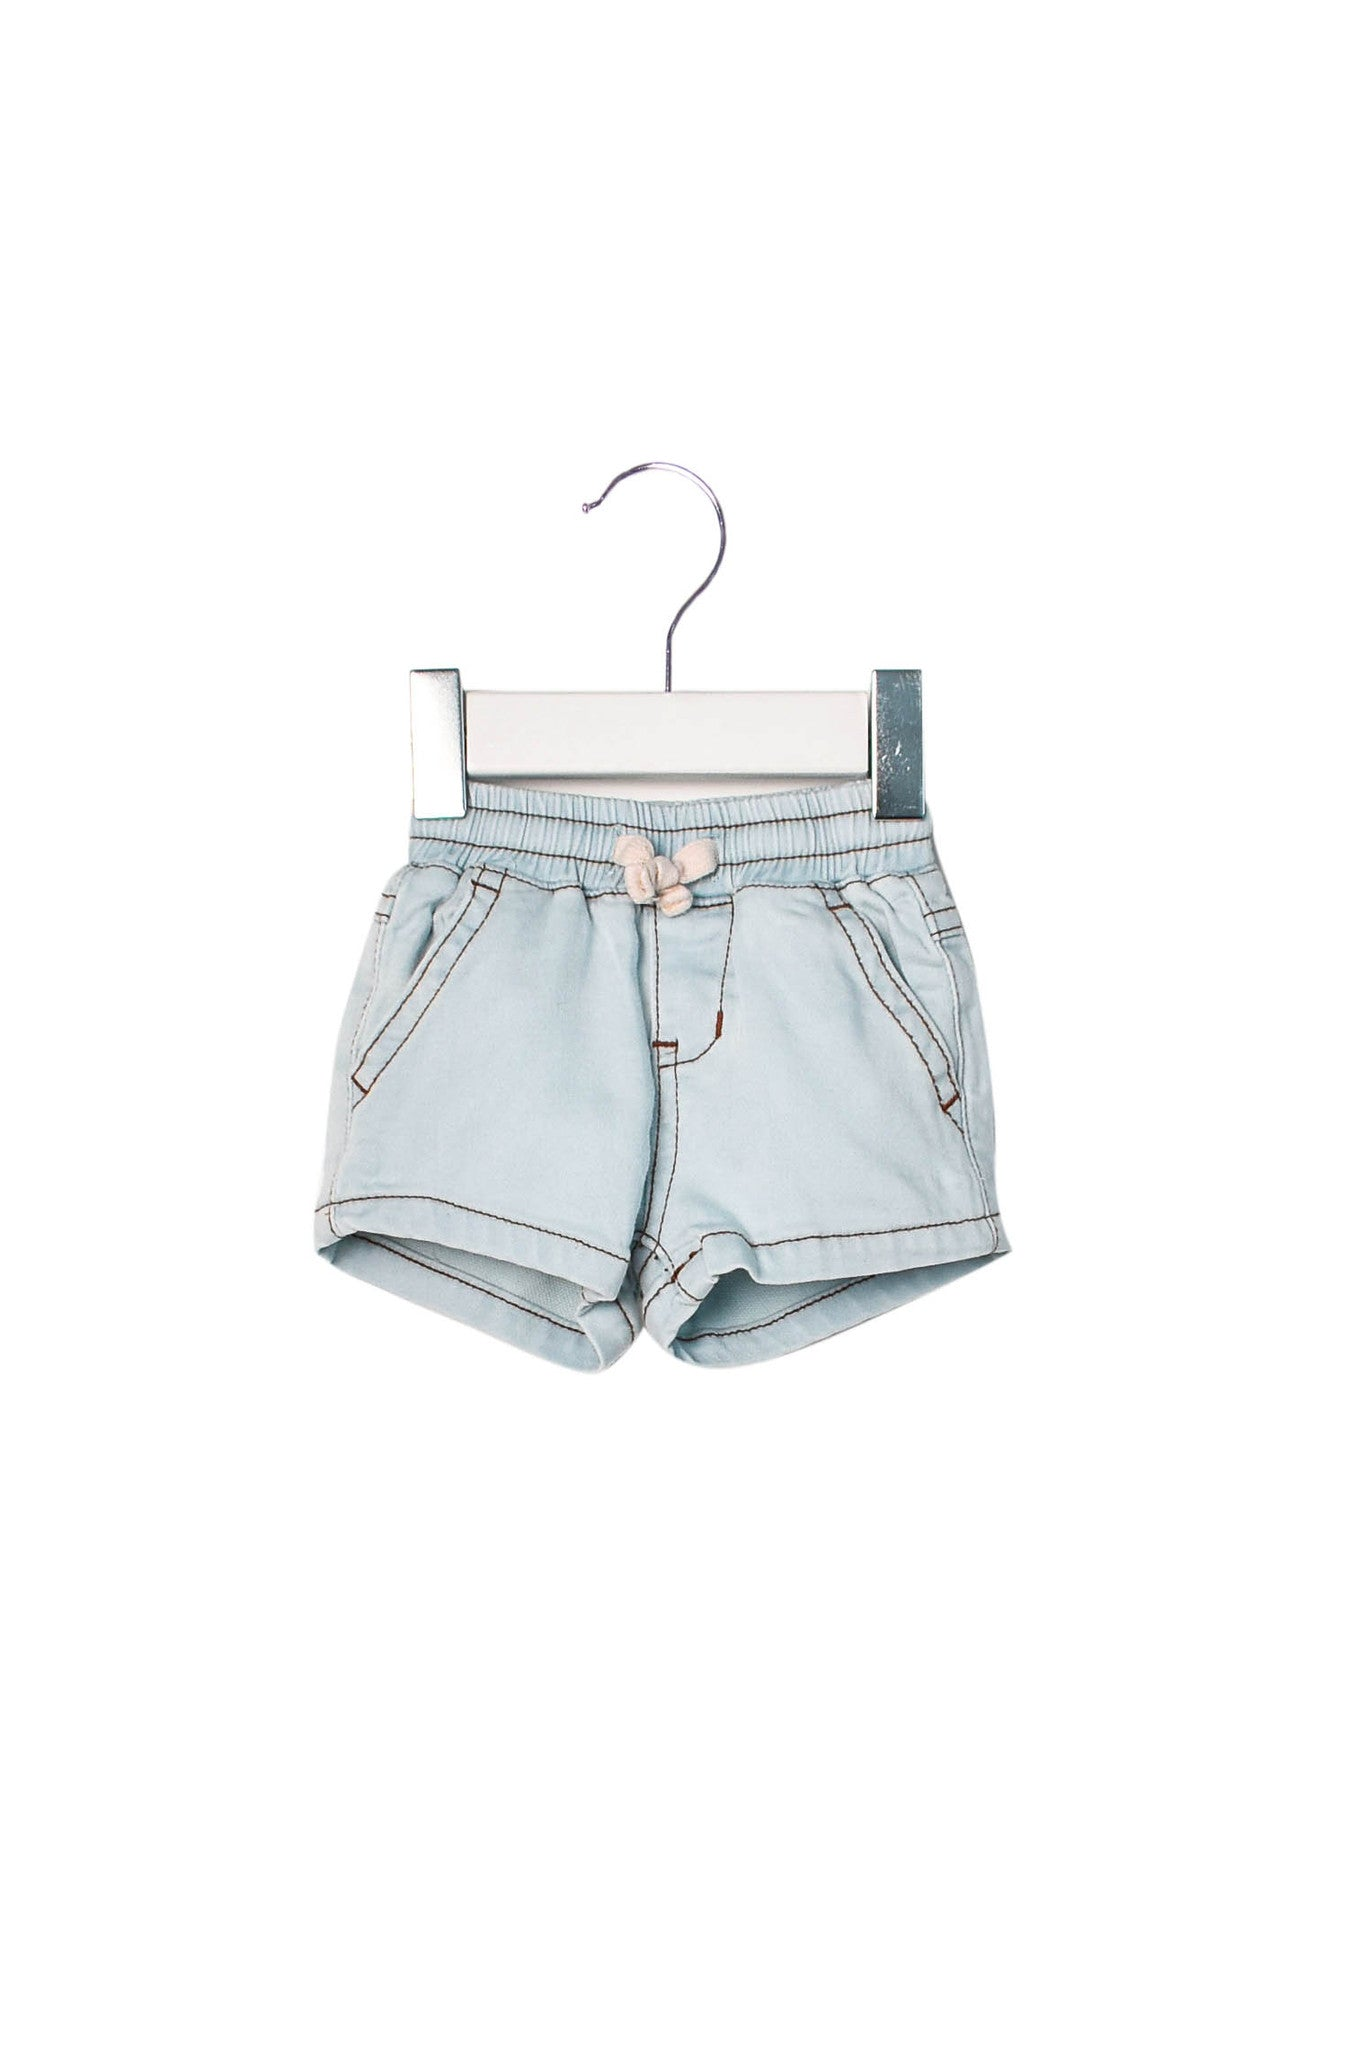 10003567 Seed Baby~Shorts 0-3M at Retykle